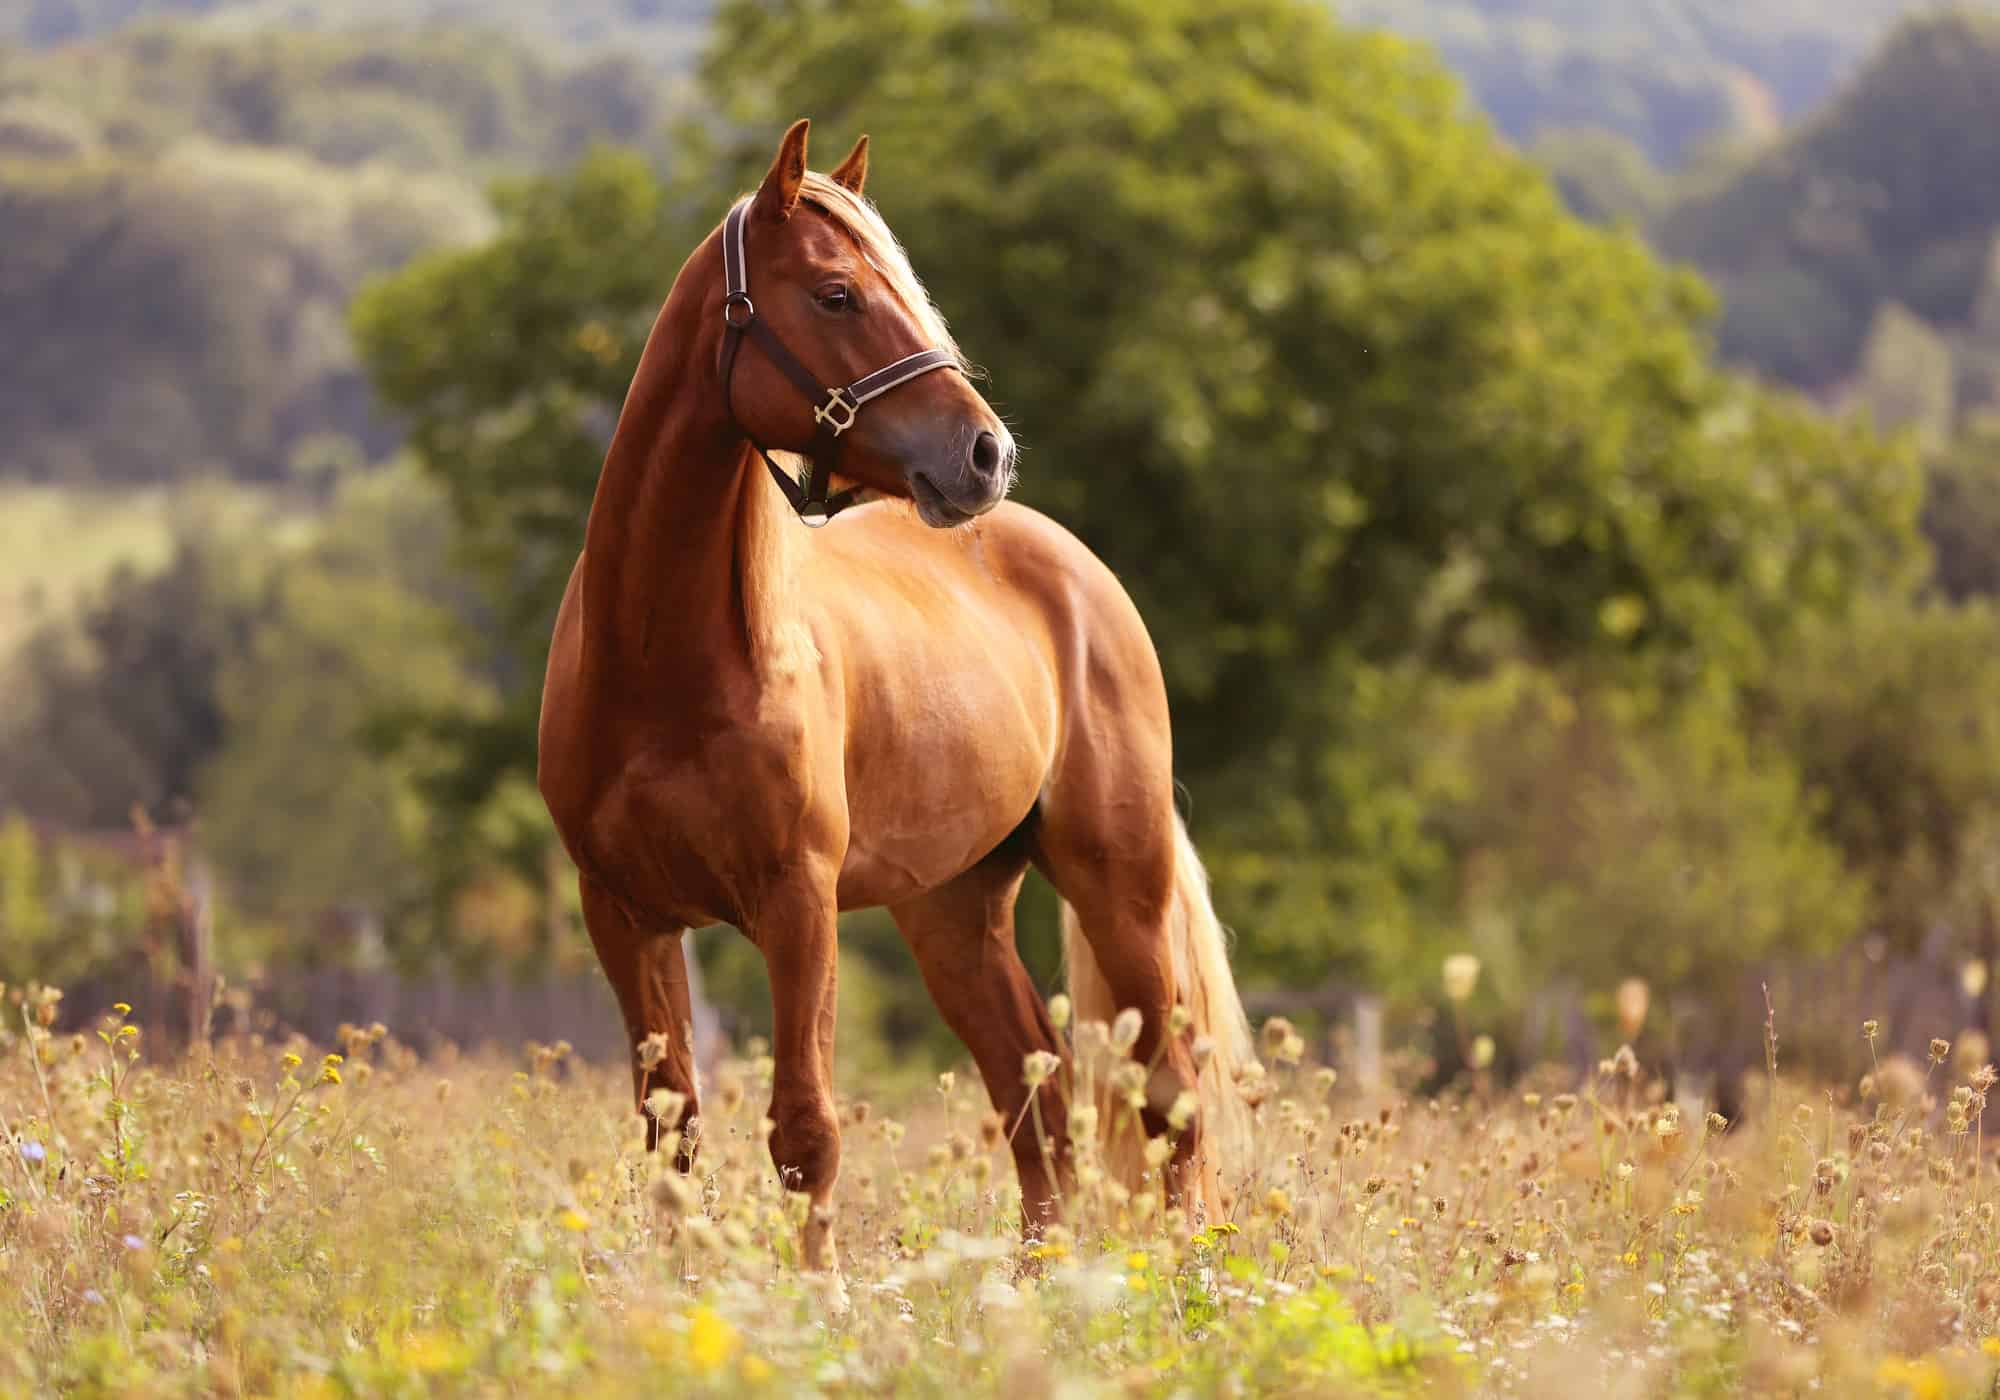 How Strong Is a Horse (4 Facts)